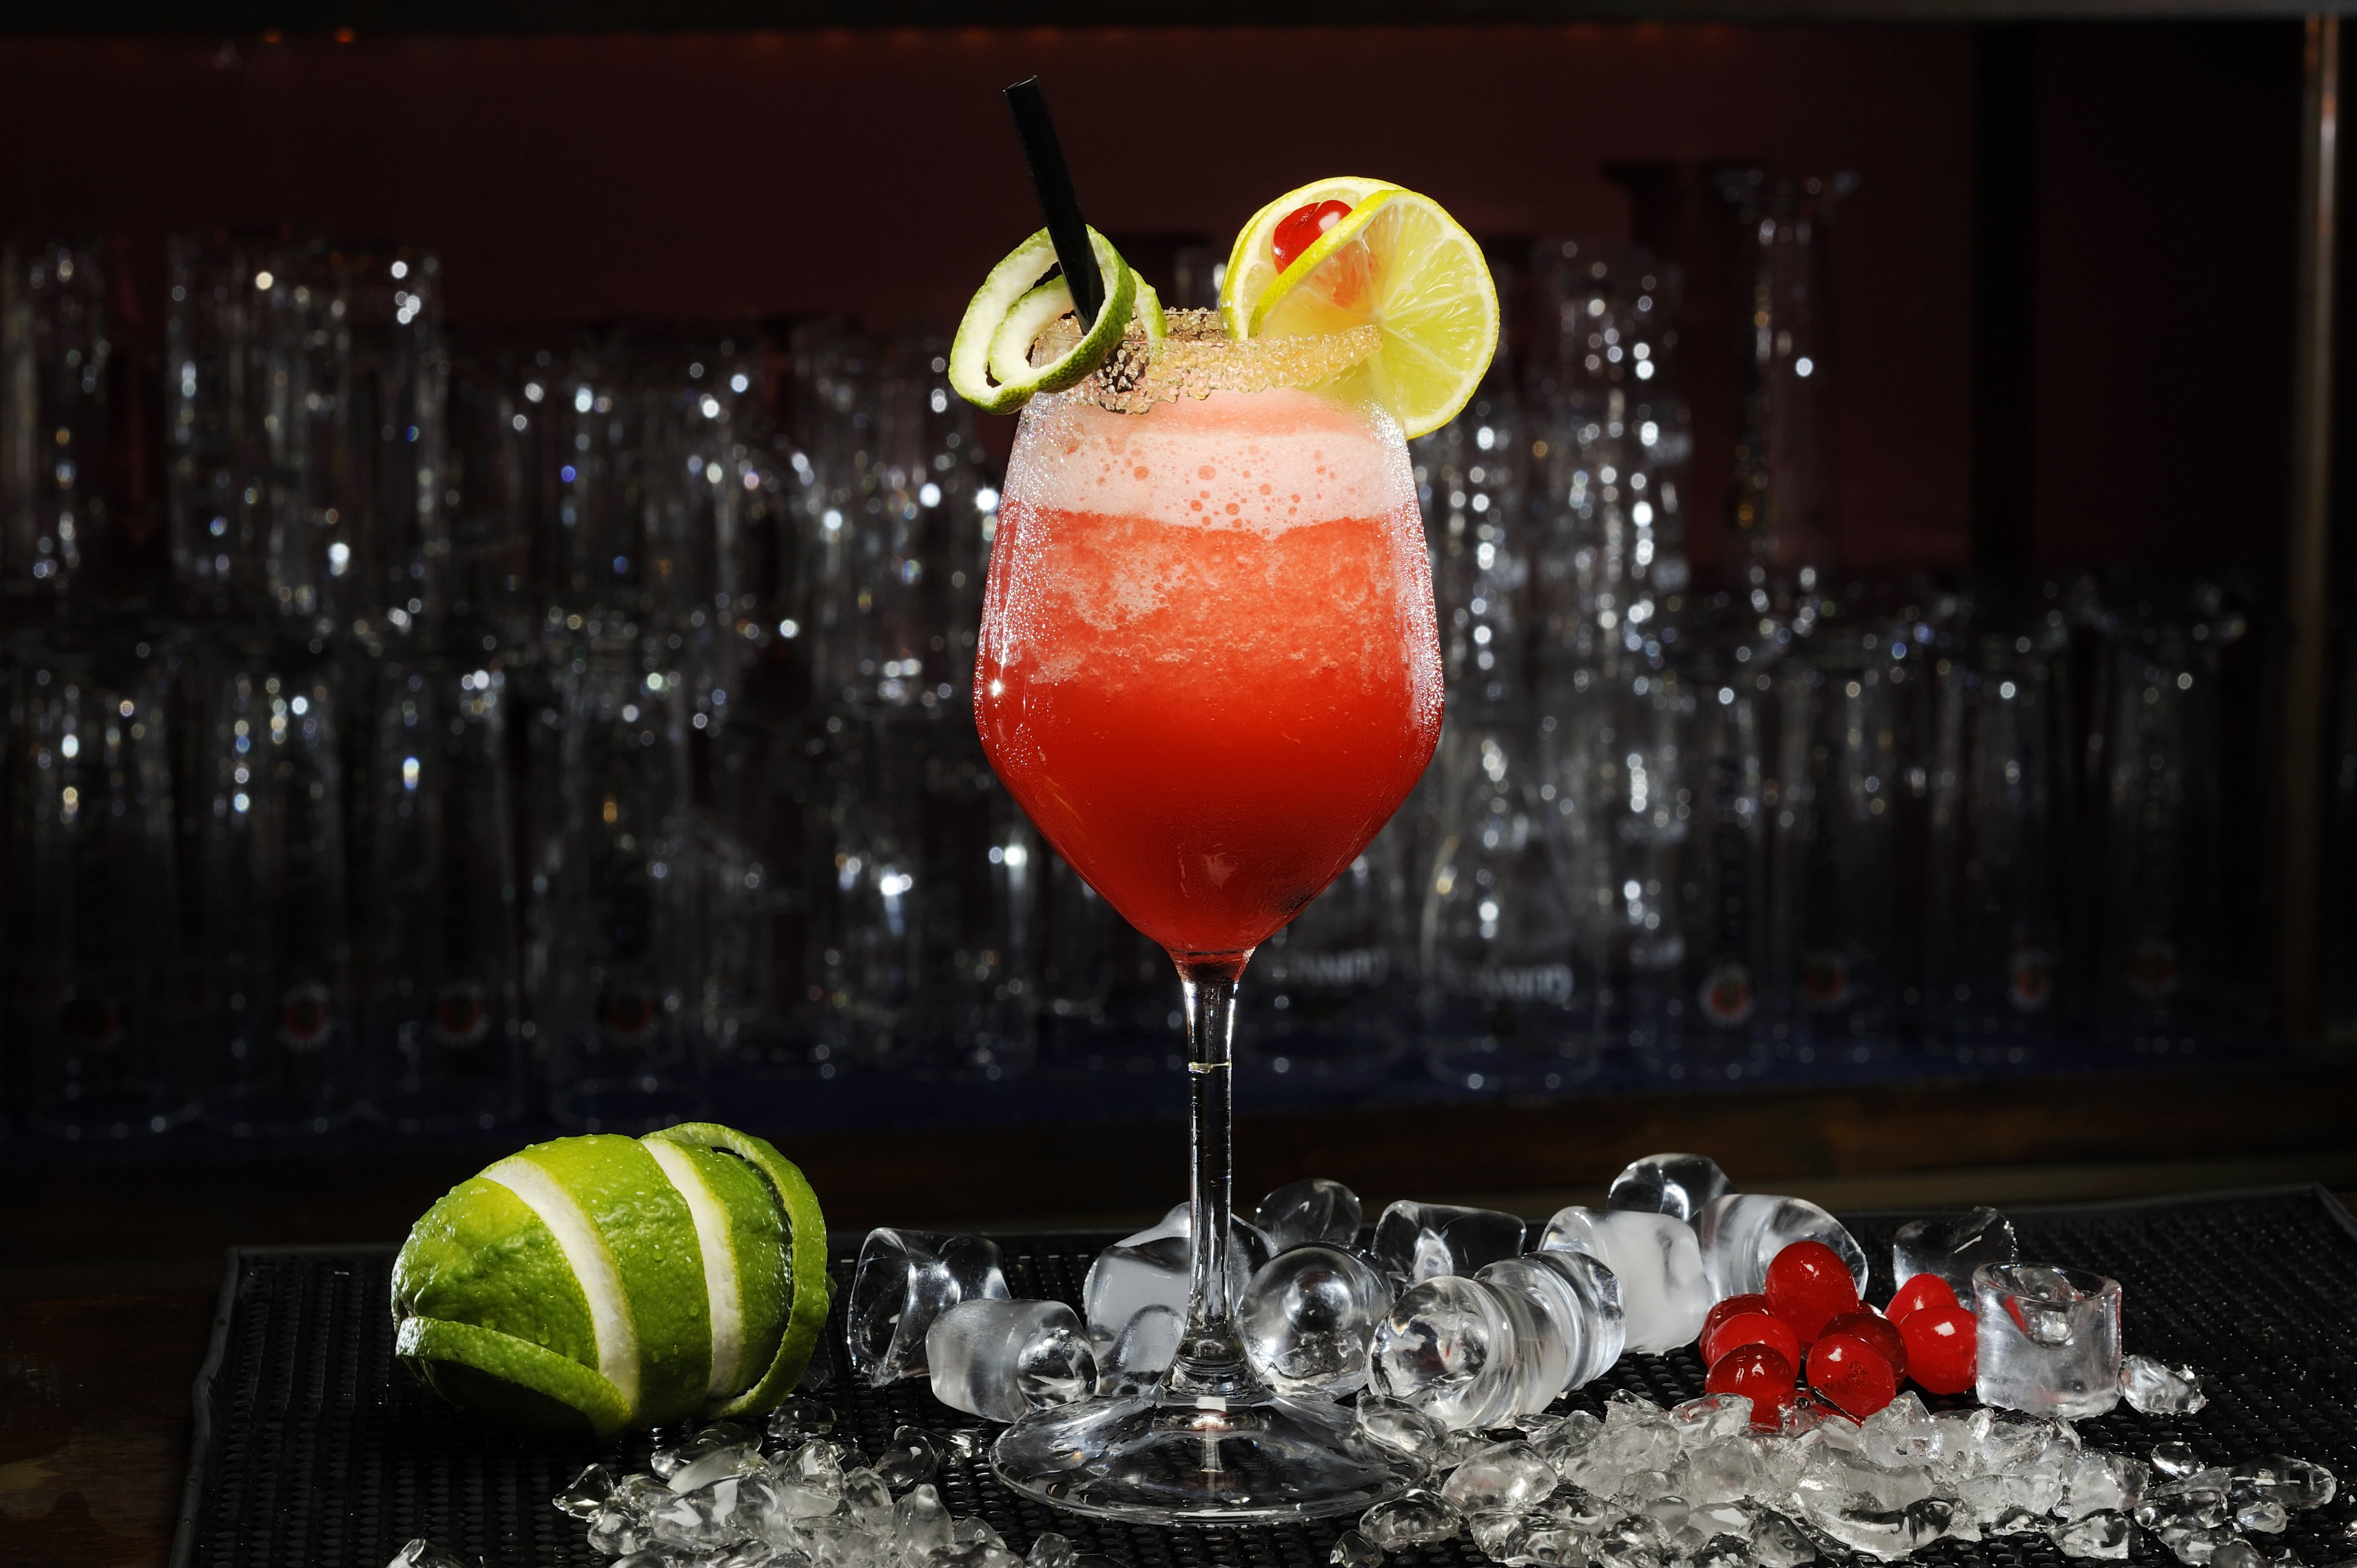 Daiquiri Fruit Cocktail Ice Drink Alcohol Wallpaper